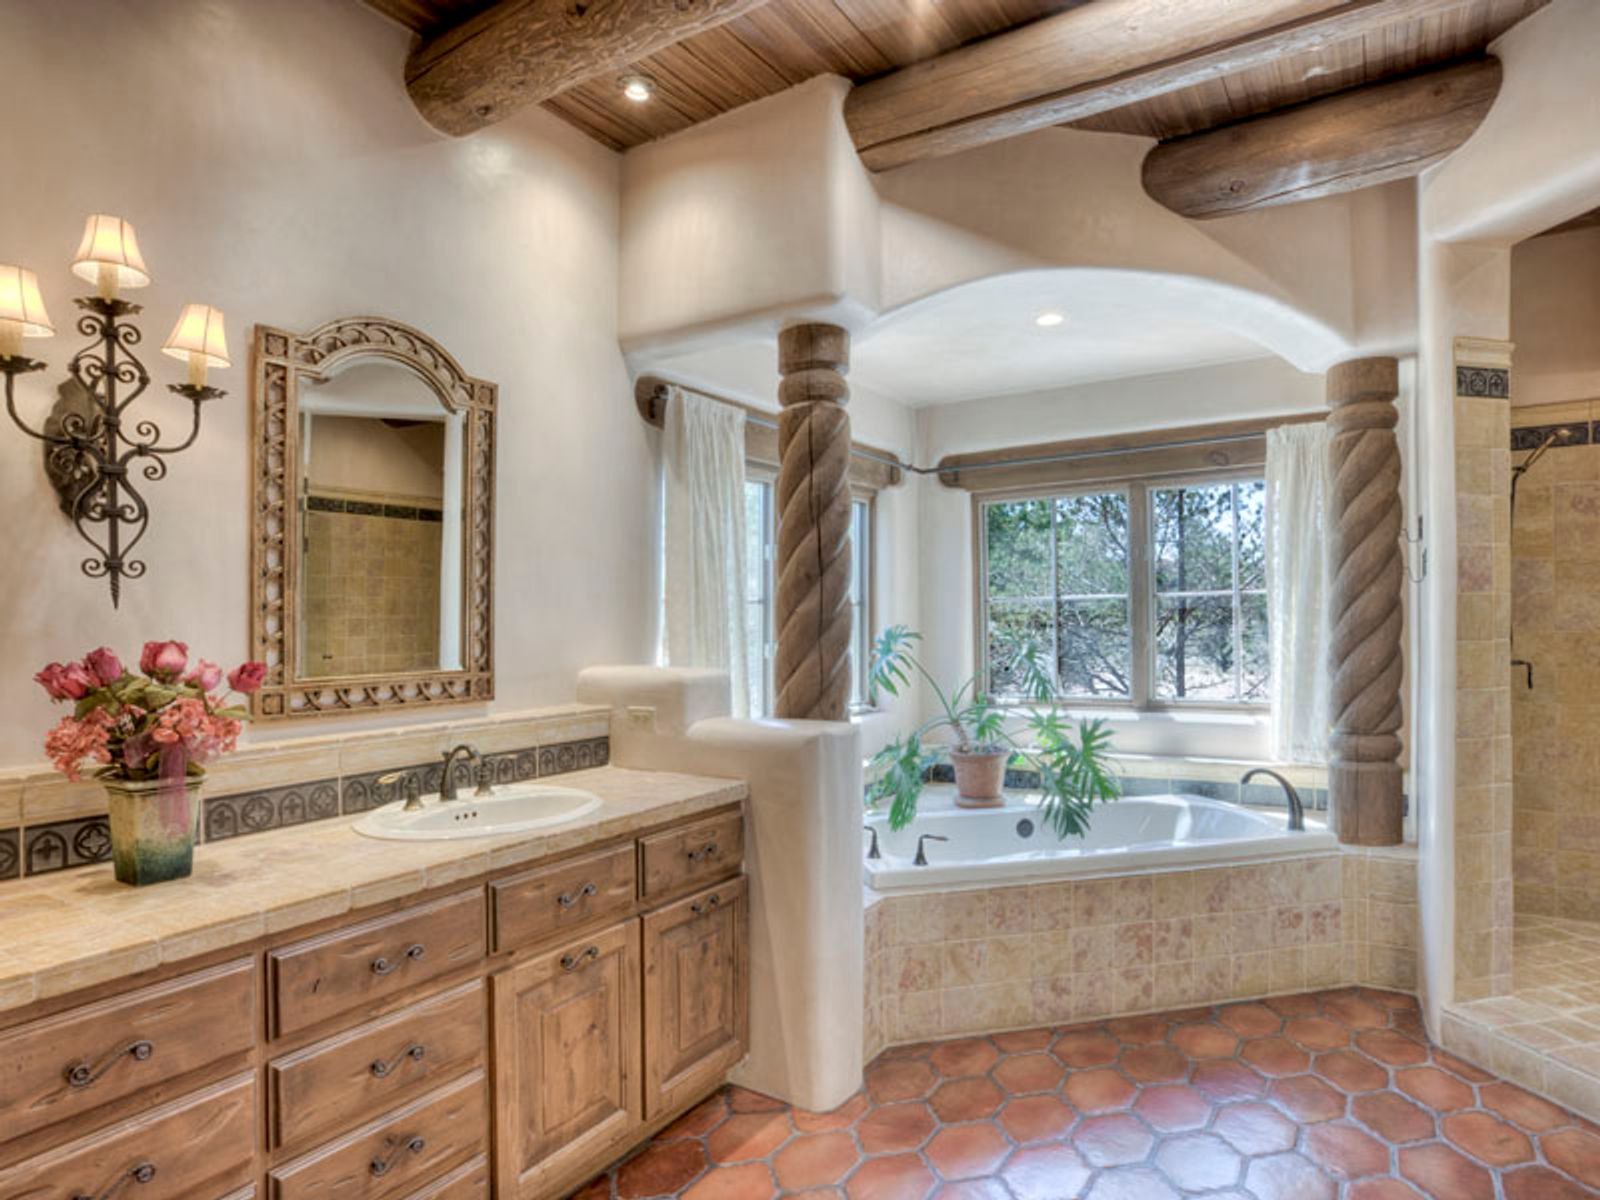 Mstr Ba includes cool stone, woodwork, soaking tub